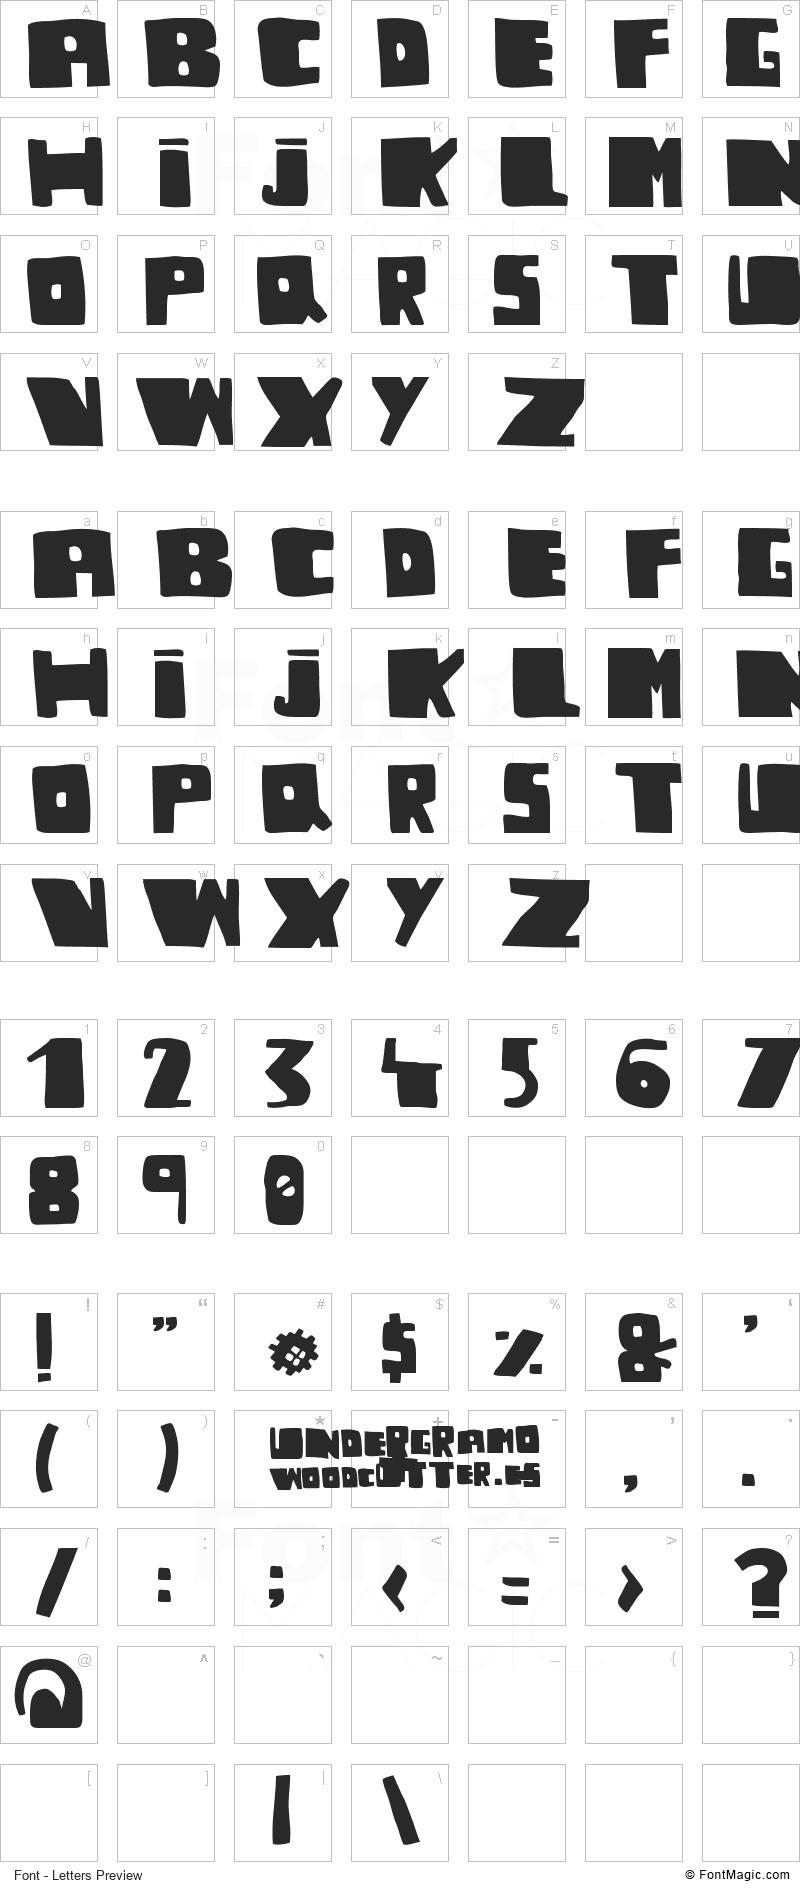 Undergramo Font - All Latters Preview Chart